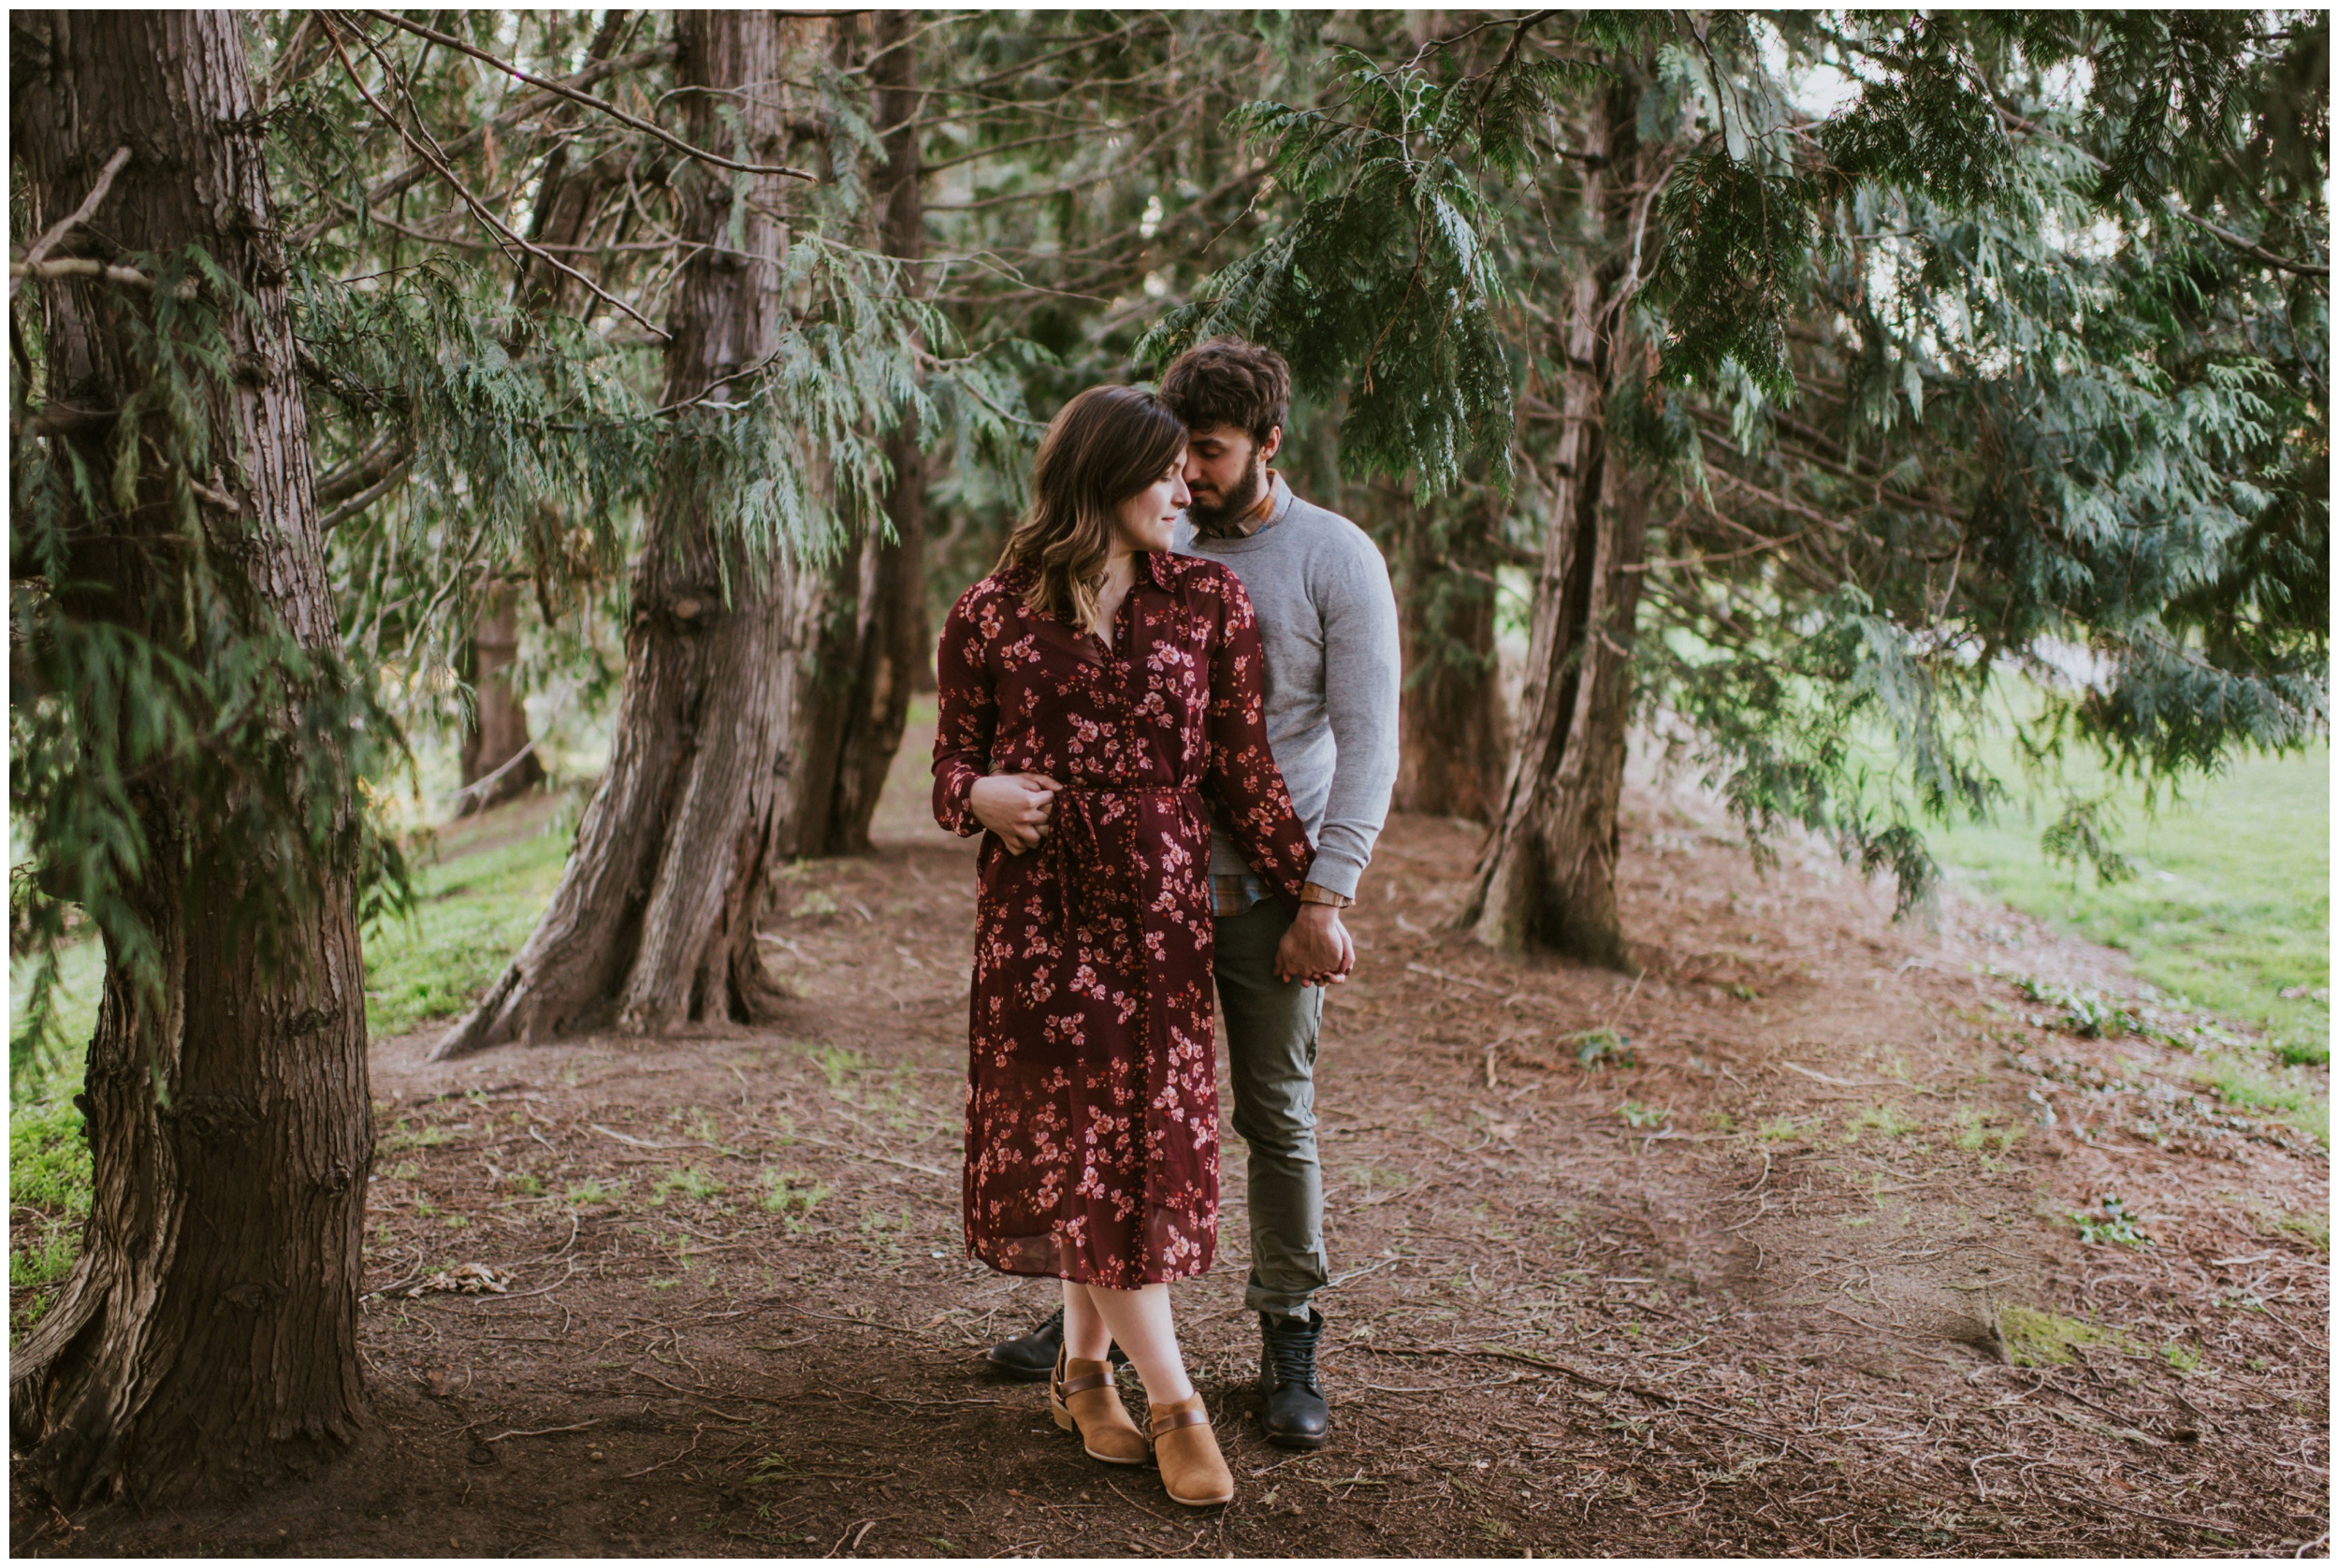 romantic couples pose in the forest | Seattle Engagement Photographer www.riversandroadsphotography.com